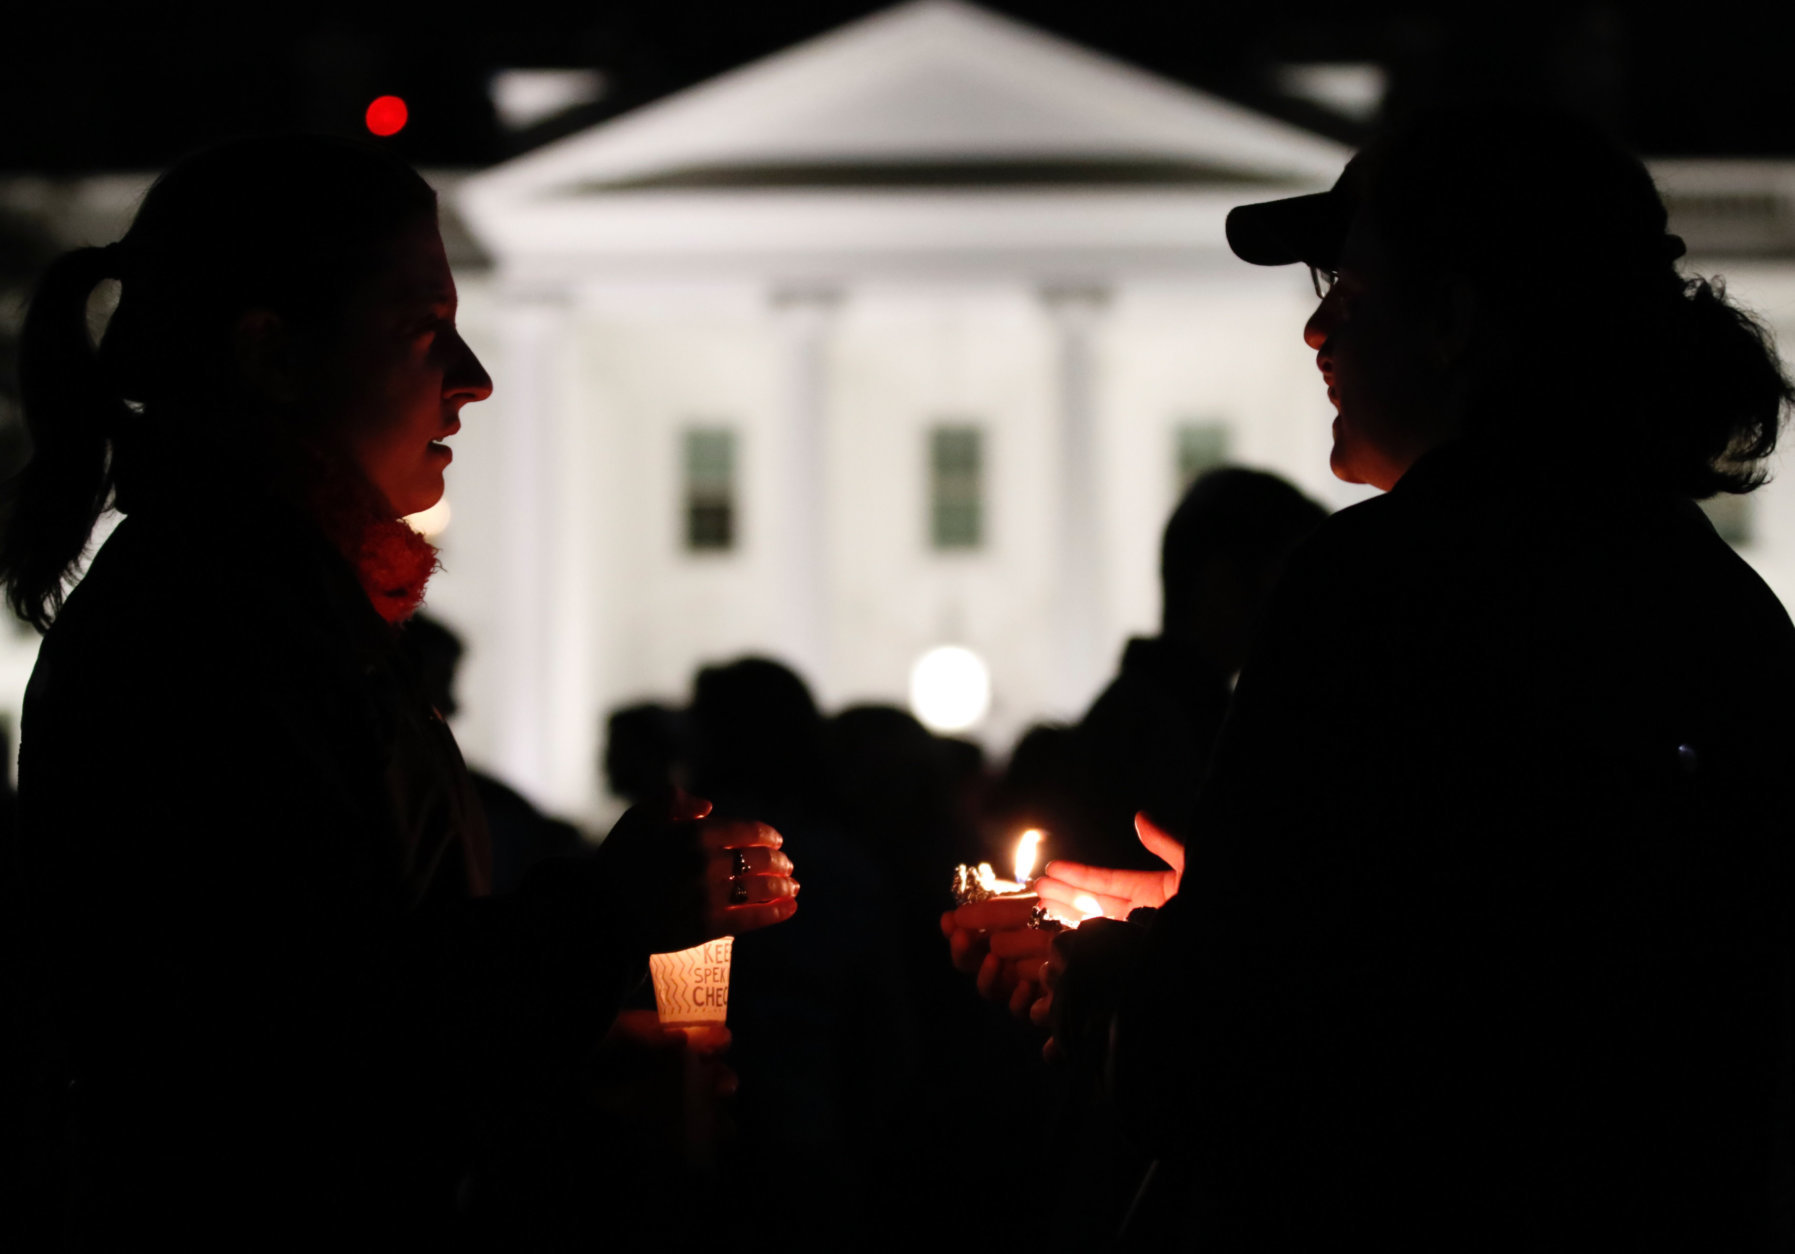 People gather outside the White House for a vigil after a gunman open fired at a Pittsburgh synagogue on Saturday, Oct. 27, 2018. (WTOP/Kate Ryan)